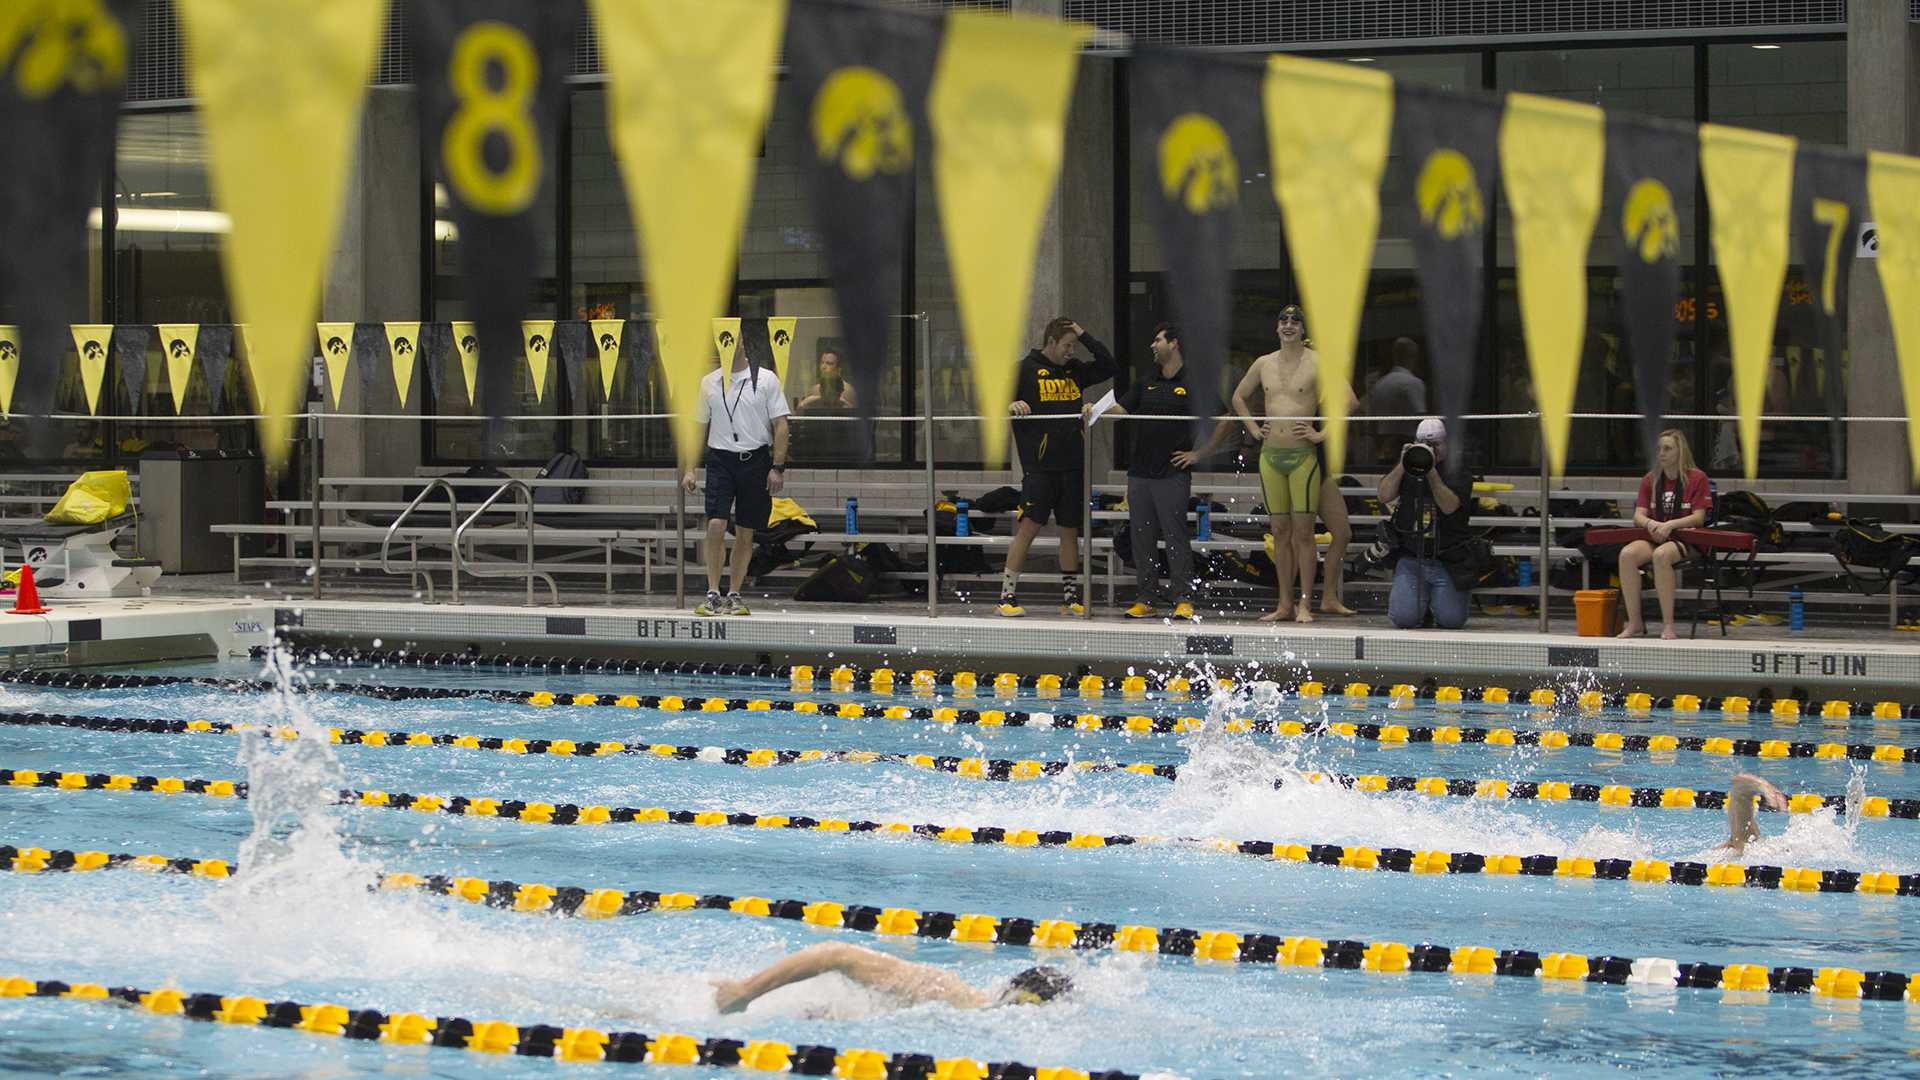 Swimmers compete in the Men's 200 freestyle during a swim meet between University of Iowa and Western Illinois on Friday, Feb. 2, 2018 at the University Aquatic Center. Swimmers competed in a variety of events including relays and freestyle swimming. (Katie Goodale/The Daily Iowan)